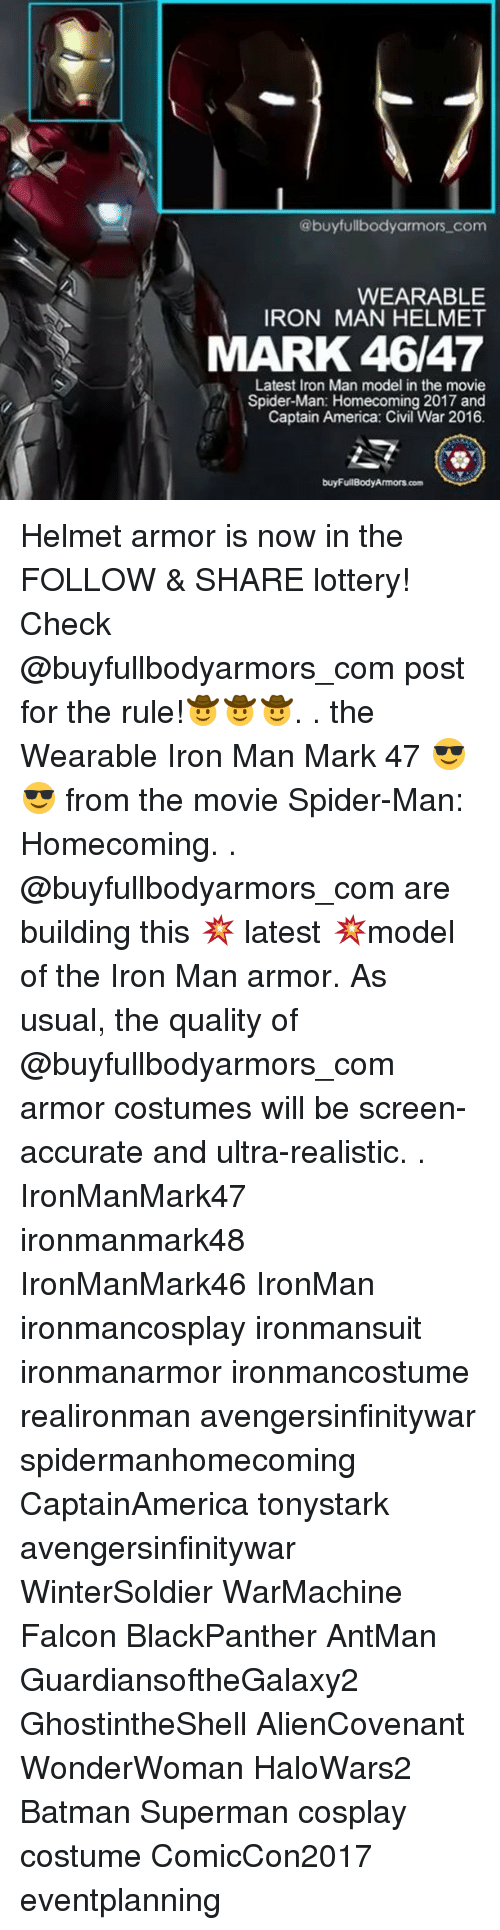 America, Batman, and Captain America: Civil War: @buyfullbodyarmors com  WEARABLE  IRON MAN HELMET  MARK 46/47  Latest Iron Man model in the movie  Spider-Man: Homecoming 2017 and  Captain America: Civil War 2016. Helmet armor is now in the FOLLOW & SHARE lottery! Check @buyfullbodyarmors_com post for the rule!🤠🤠🤠. . the Wearable Iron Man Mark 47 😎😎 from the movie Spider-Man: Homecoming. . @buyfullbodyarmors_com are building this 💥 latest 💥model of the Iron Man armor. As usual, the quality of @buyfullbodyarmors_com armor costumes will be screen-accurate and ultra-realistic. . IronManMark47 ironmanmark48 IronManMark46 IronMan ironmancosplay ironmansuit ironmanarmor ironmancostume realironman avengersinfinitywar spidermanhomecoming CaptainAmerica tonystark avengersinfinitywar WinterSoldier WarMachine Falcon BlackPanther AntMan GuardiansoftheGalaxy2 GhostintheShell AlienCovenant WonderWoman HaloWars2 Batman Superman cosplay costume ComicCon2017 eventplanning